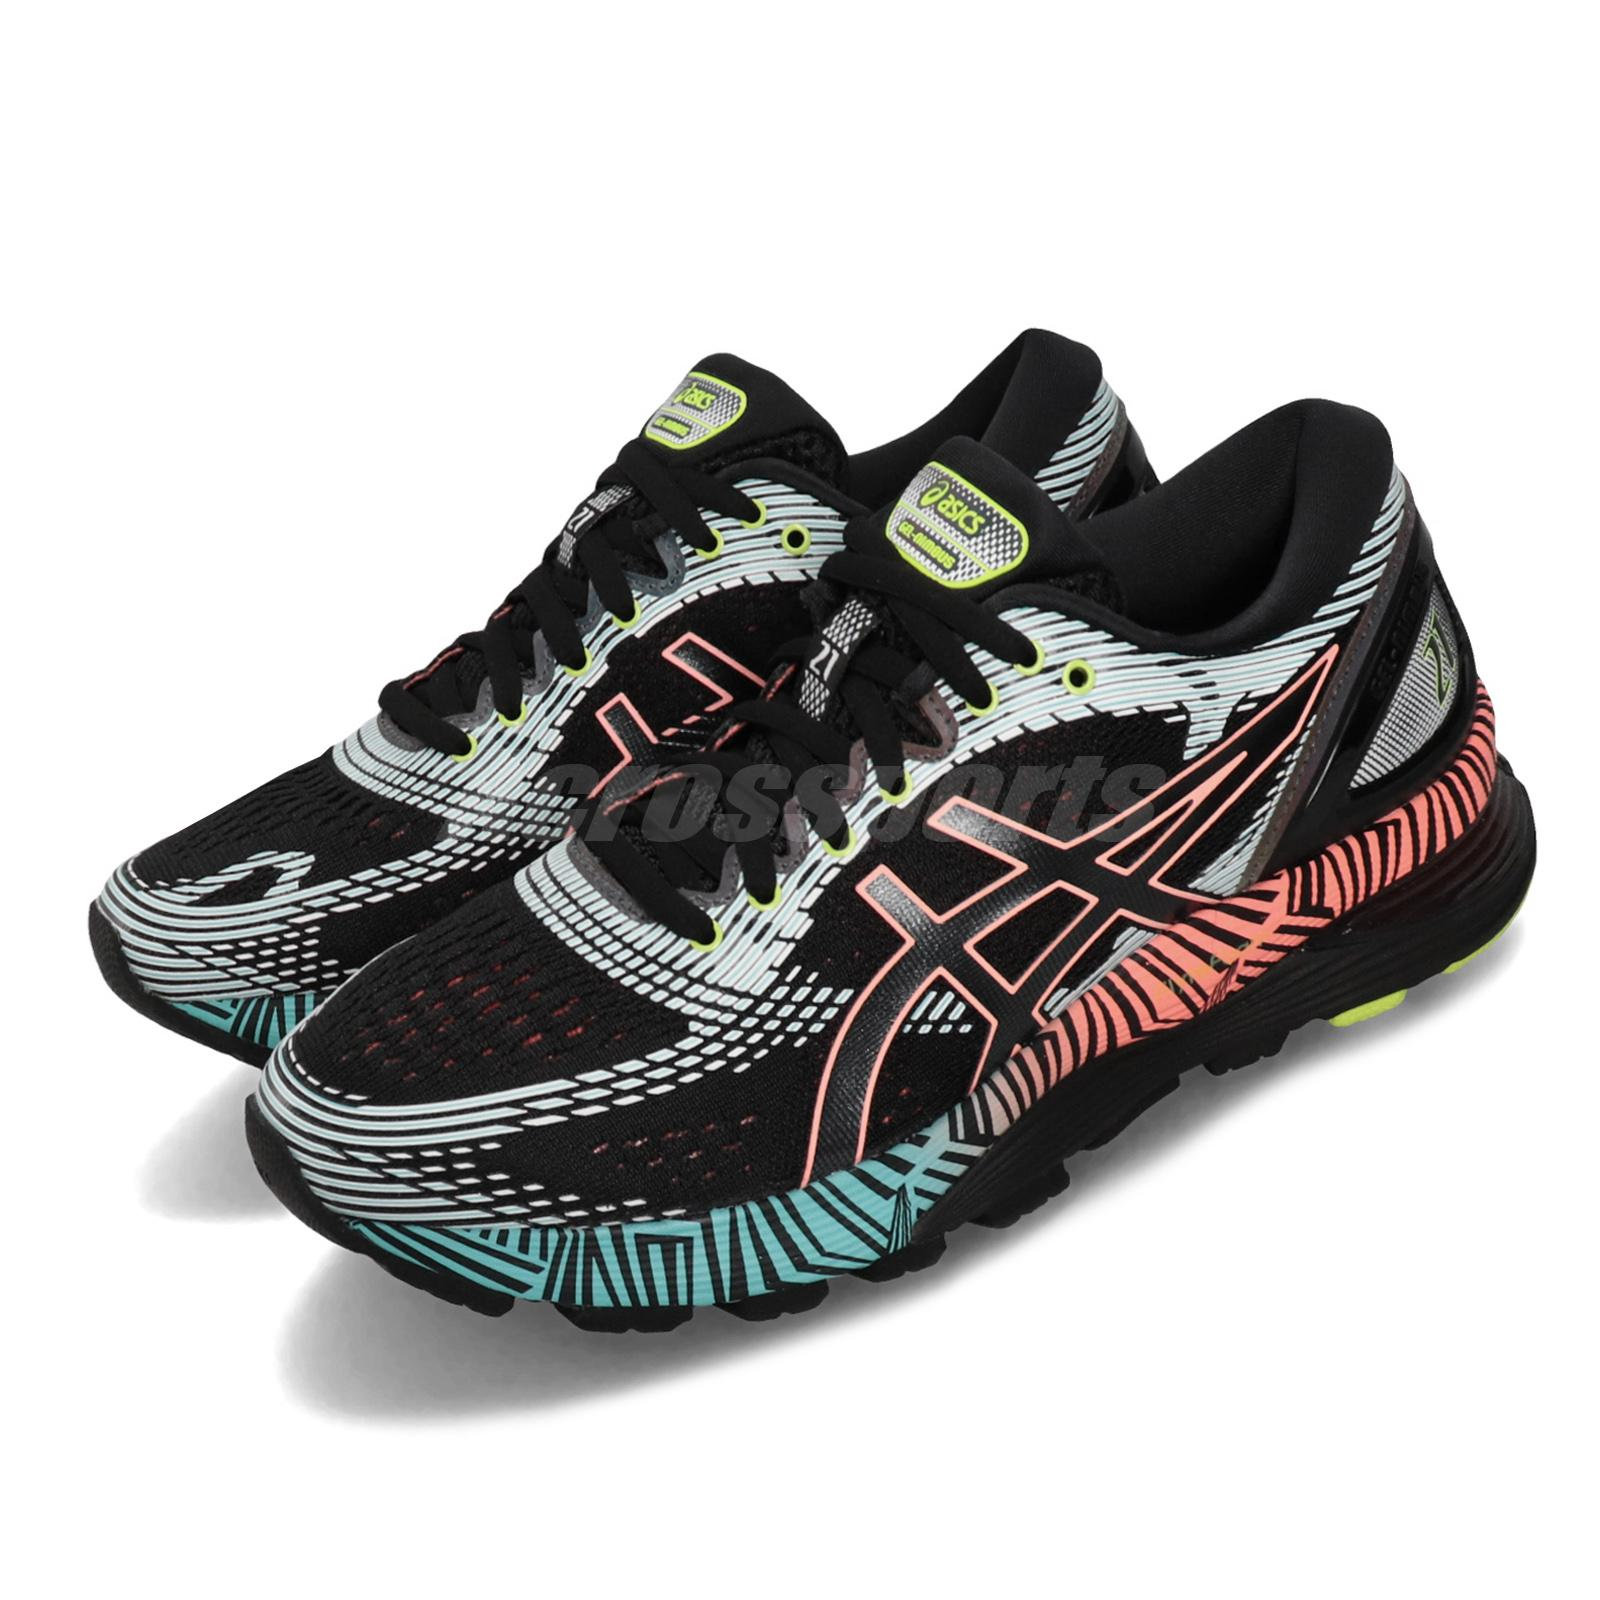 Details about Asics Gel-Nimbus 21 Lite-Show 2.0 Reflective Black Women  Running 1012A540-001